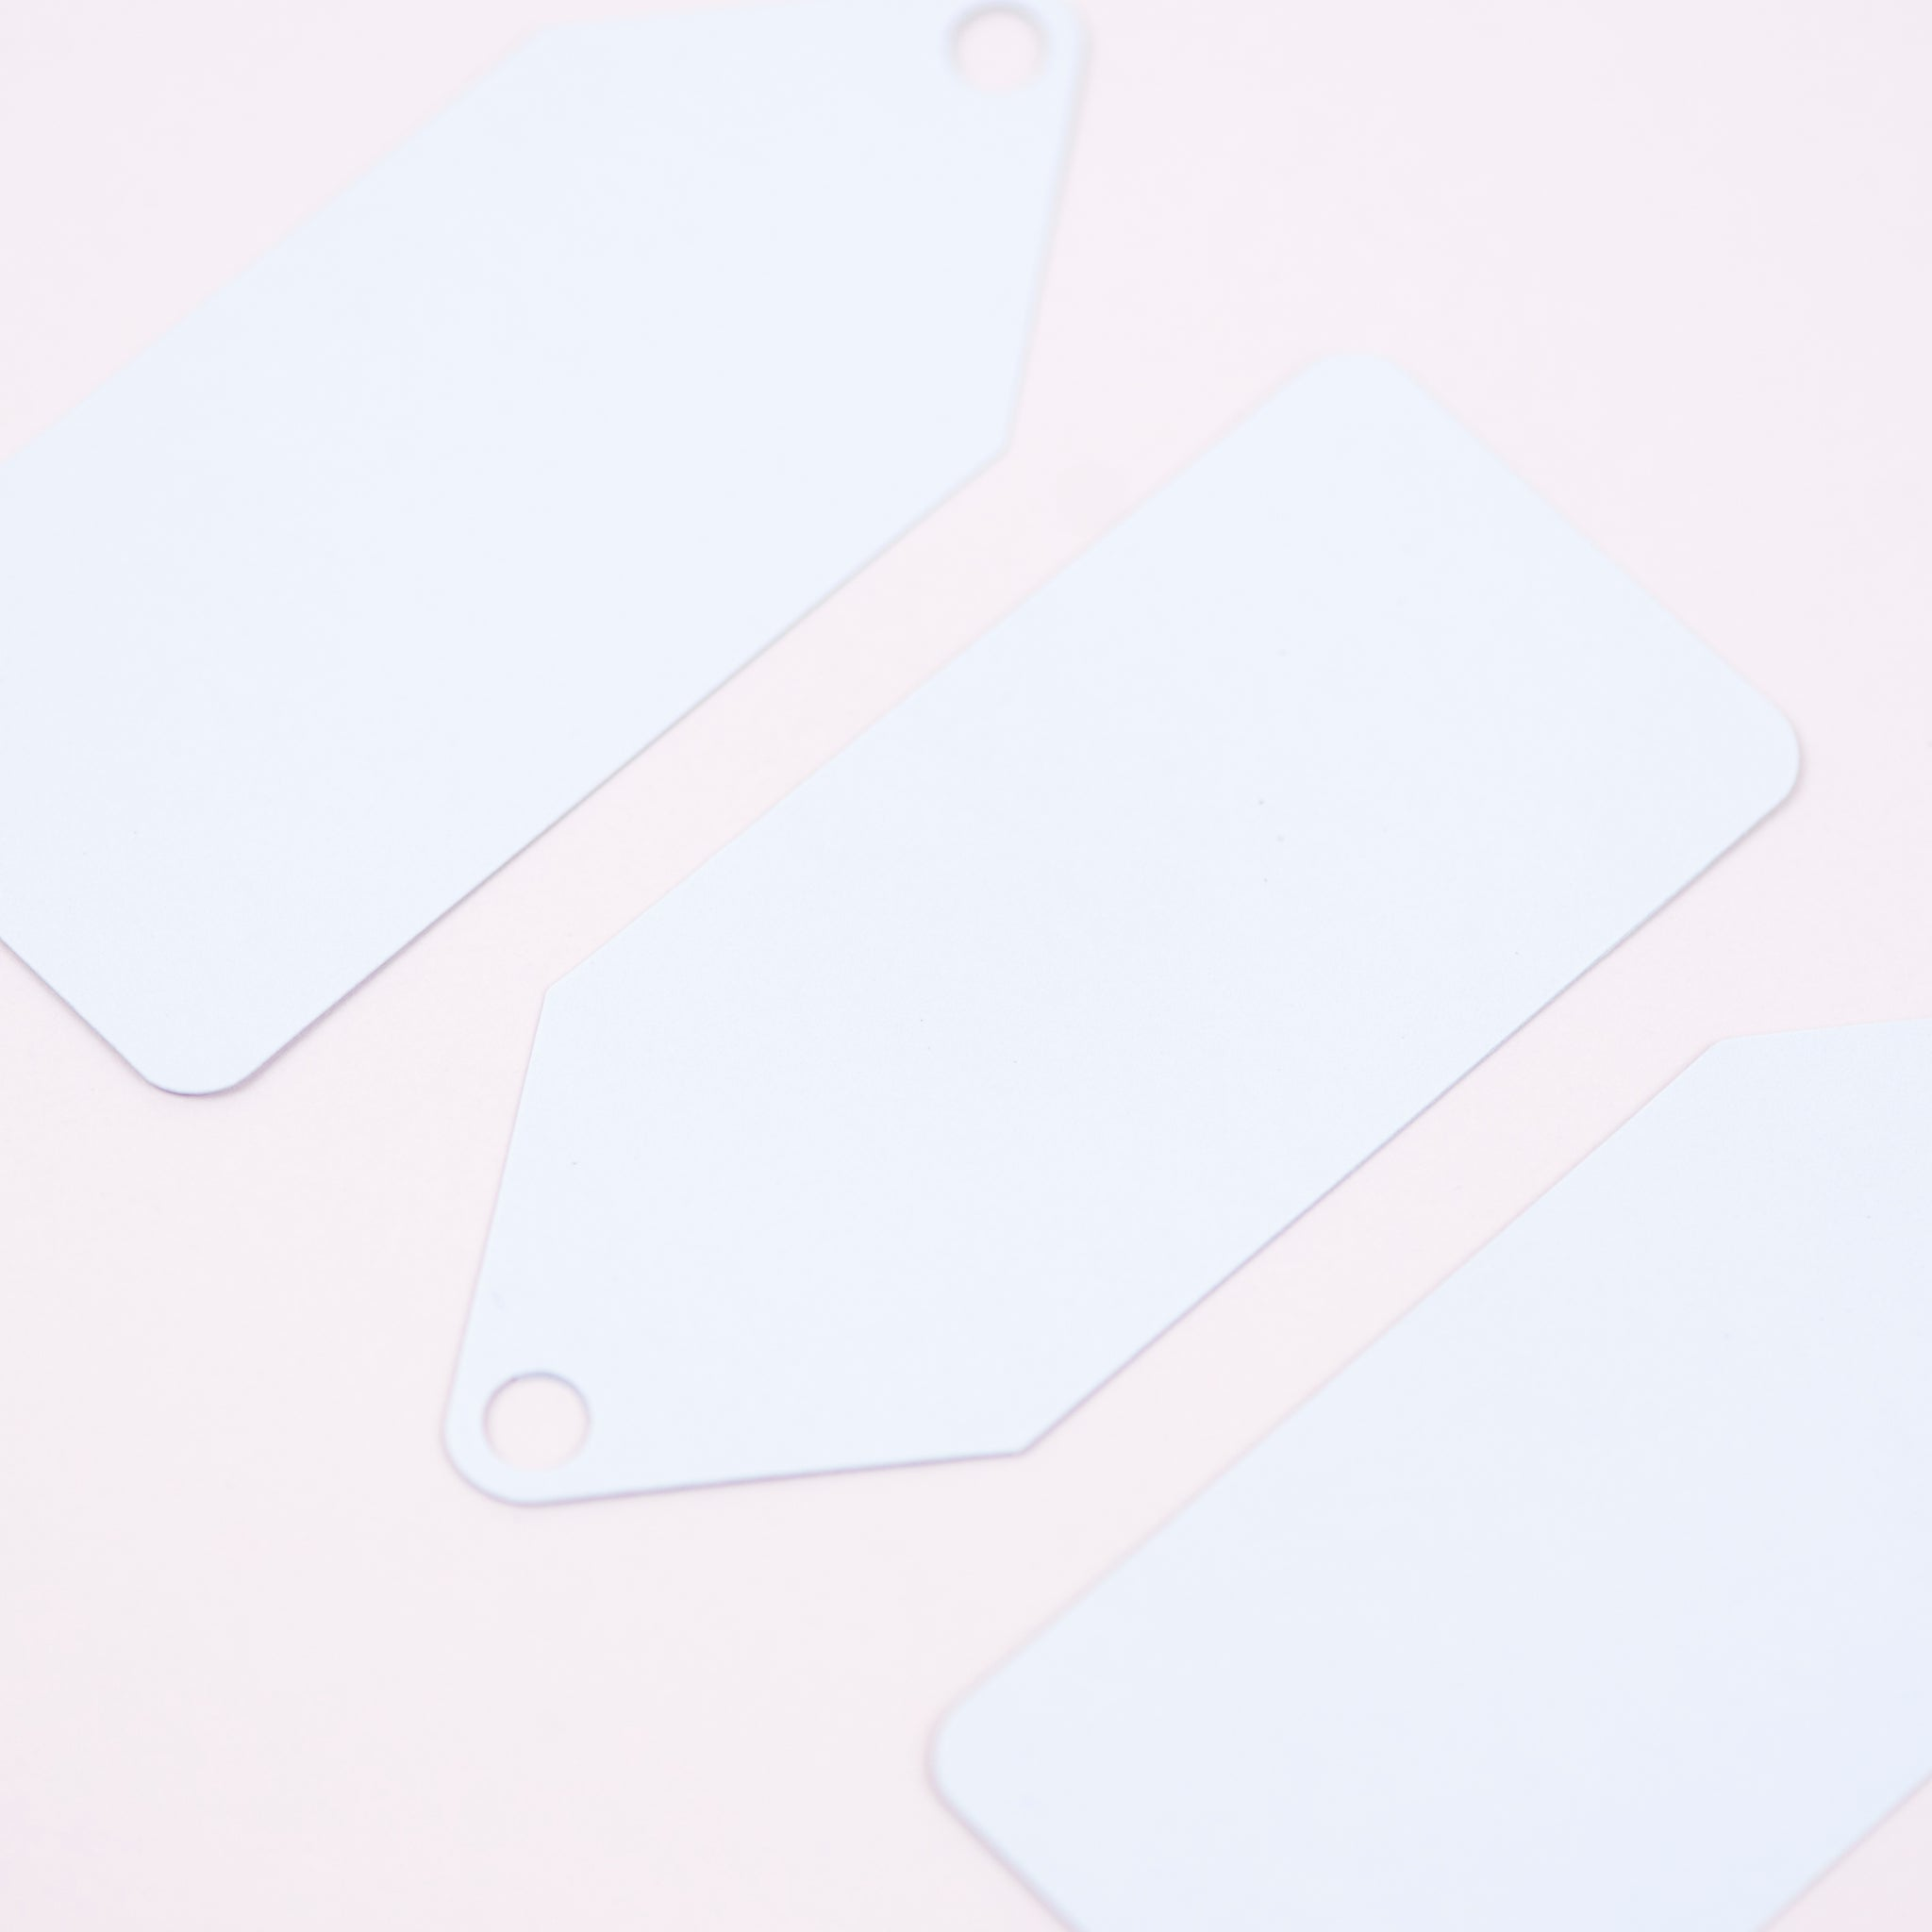 Luxury pale blue gift tags